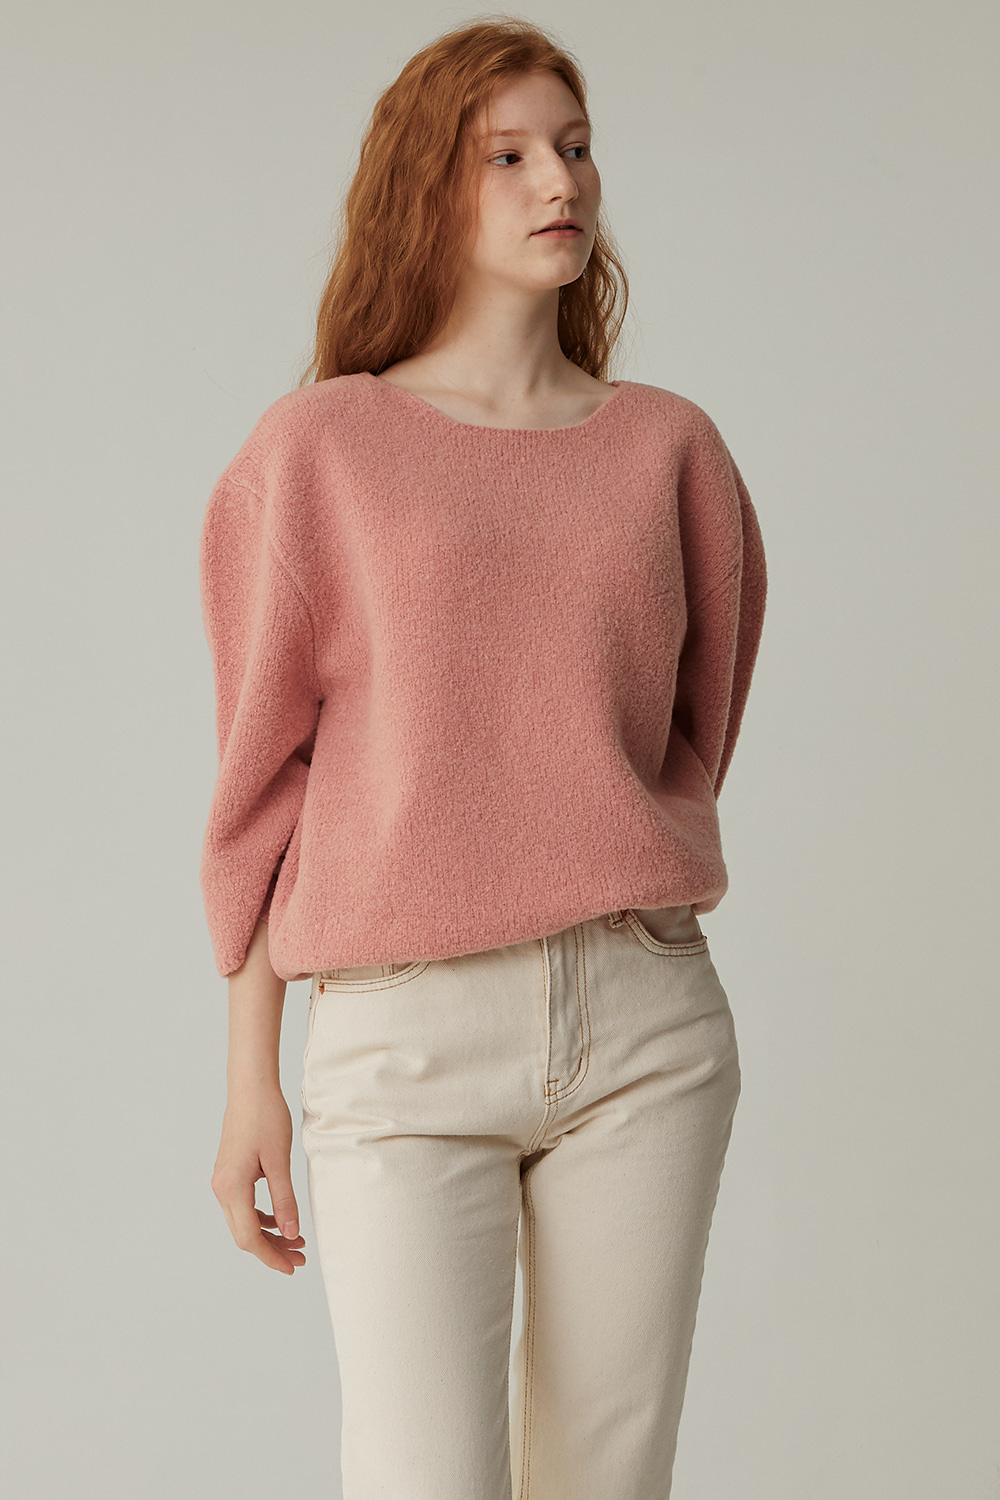 CHAGALL BOUCLE KNIT (ROSE PINK)